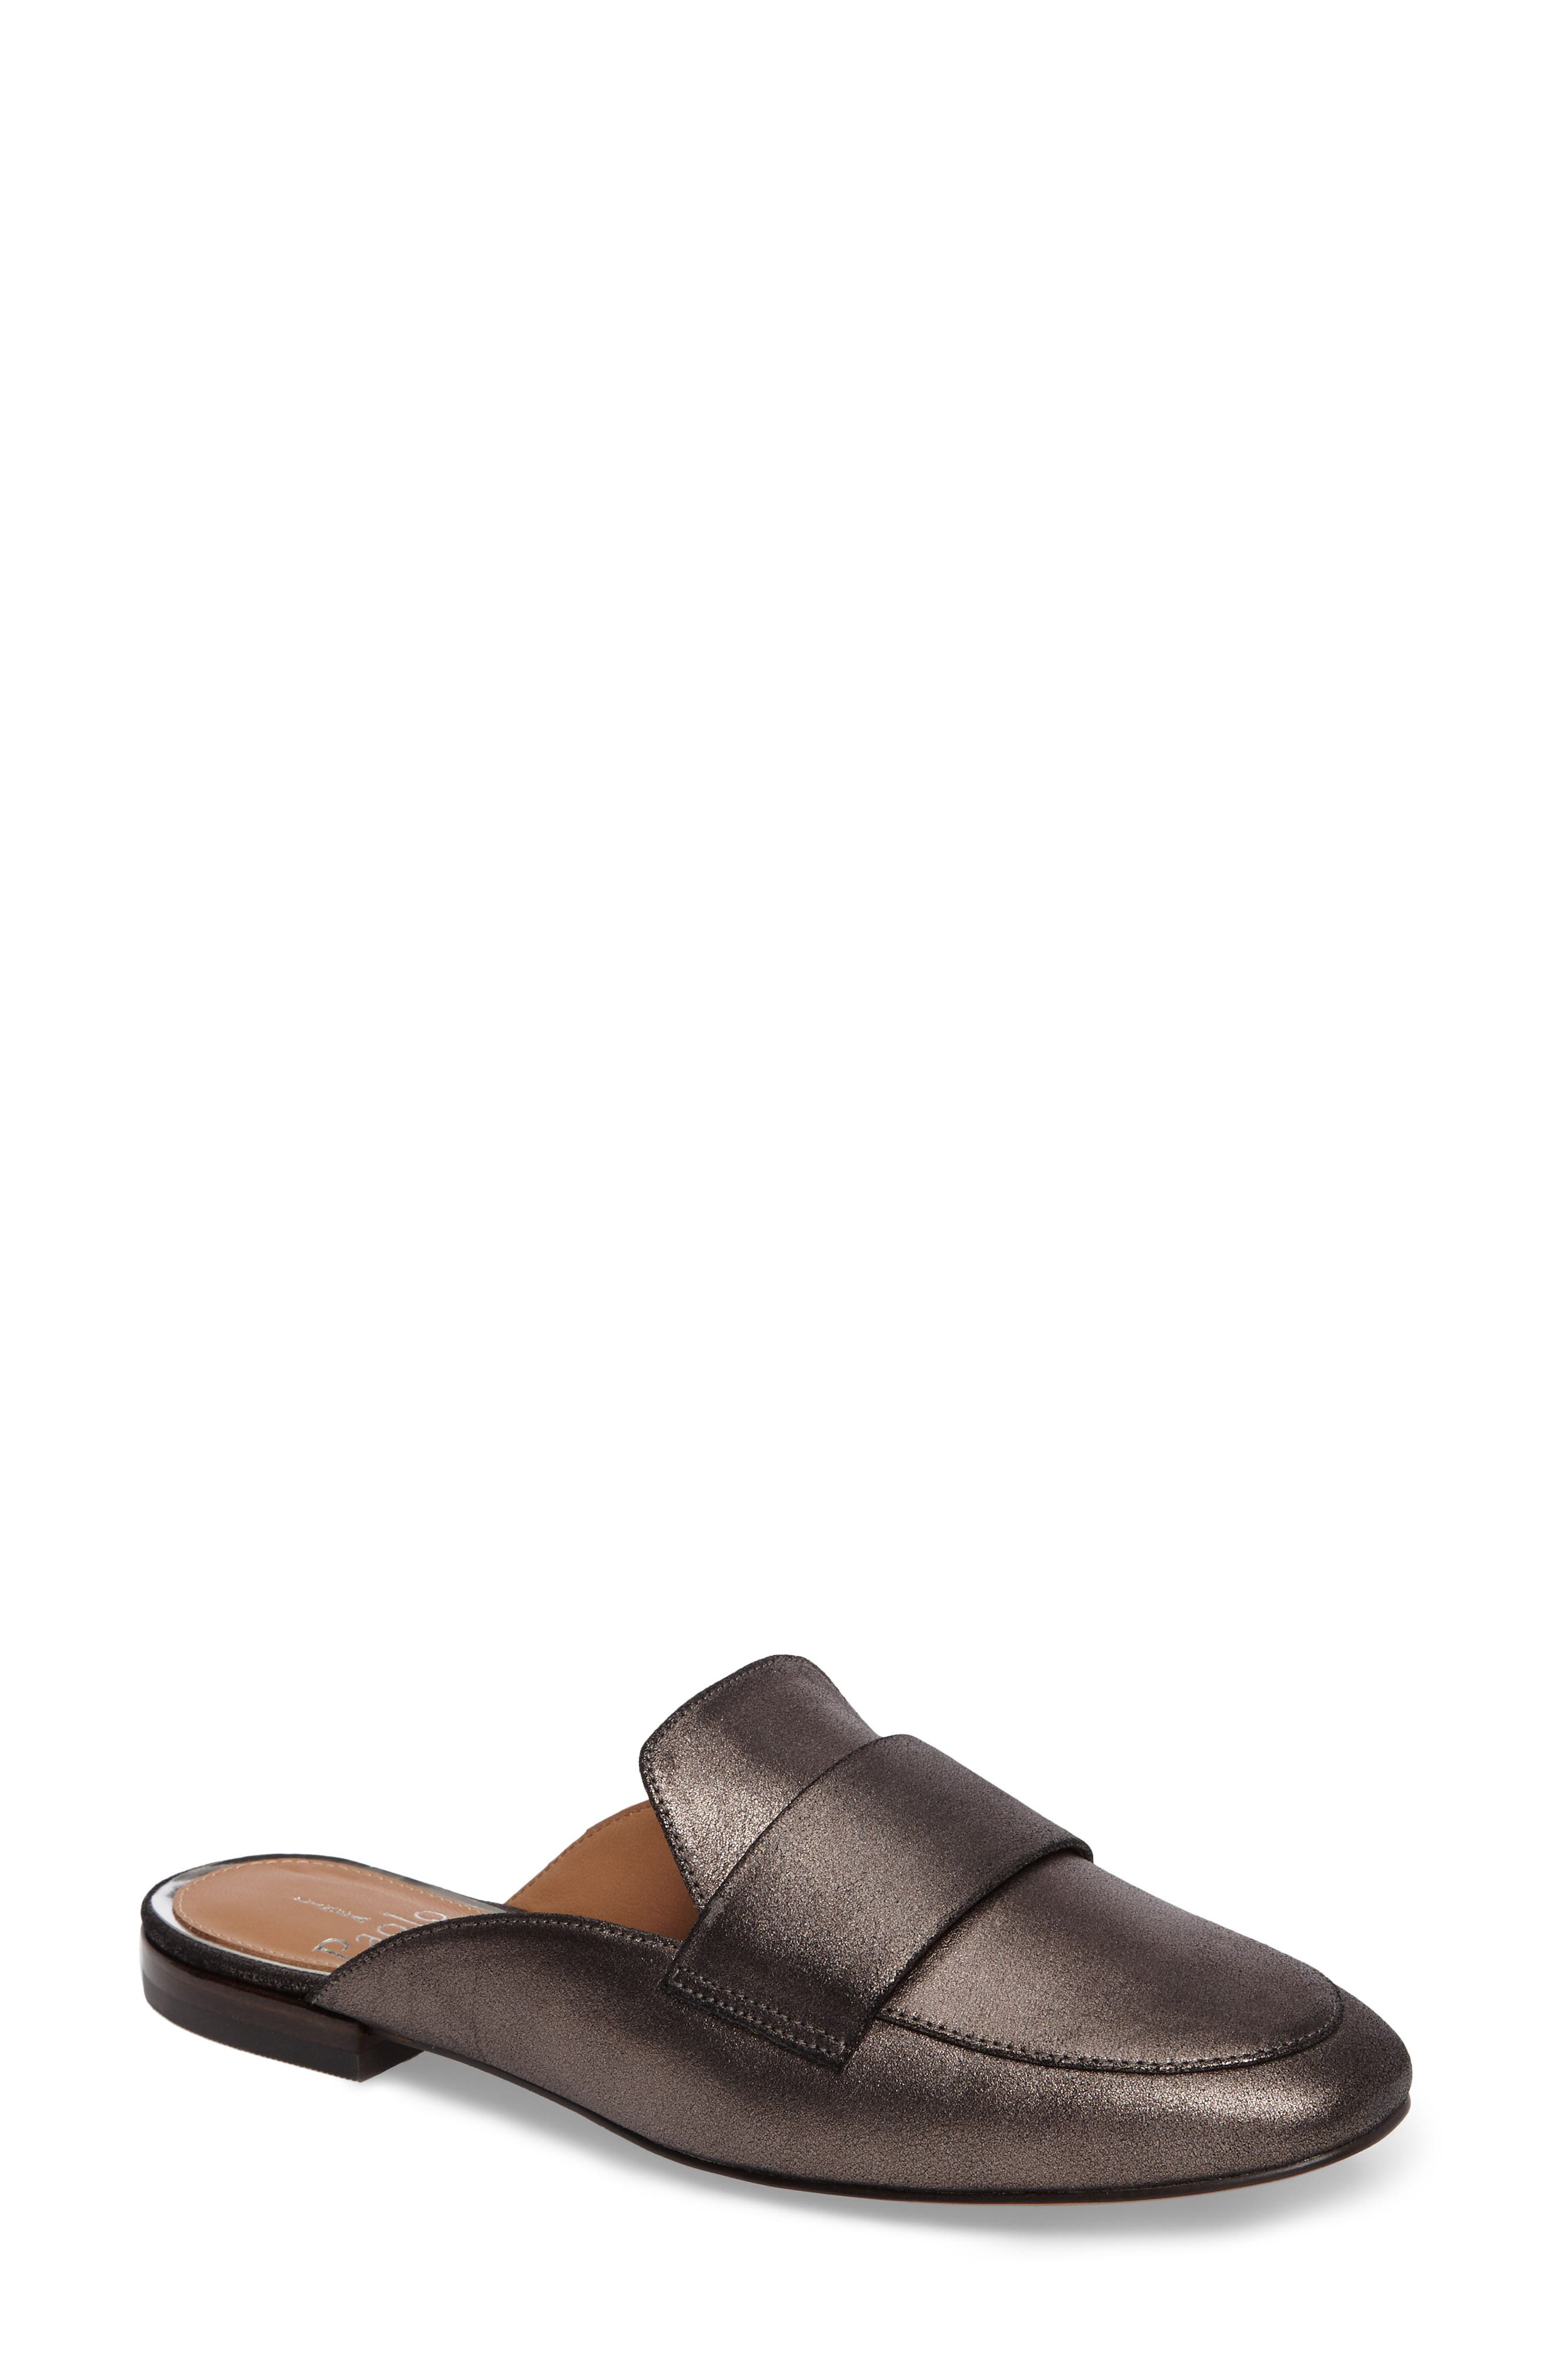 LINEA PAOLO, Annie Loafer Mule, Main thumbnail 1, color, PEWTER SUEDE